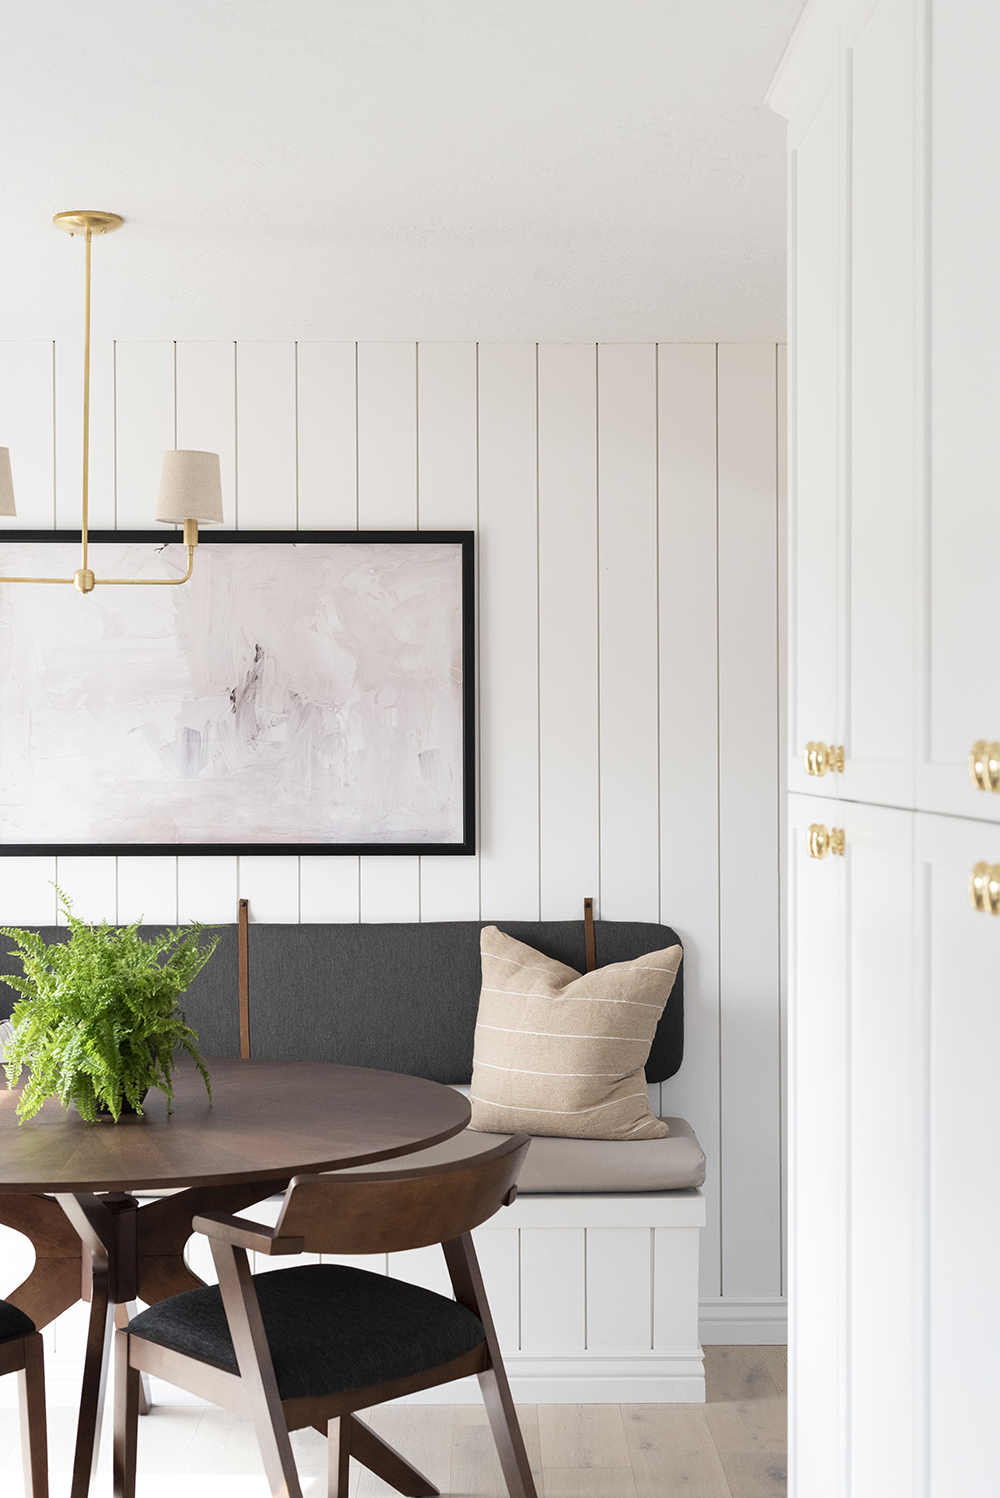 Banquette (or Headboard) DIY Back Cushion - roomfortuesday.com